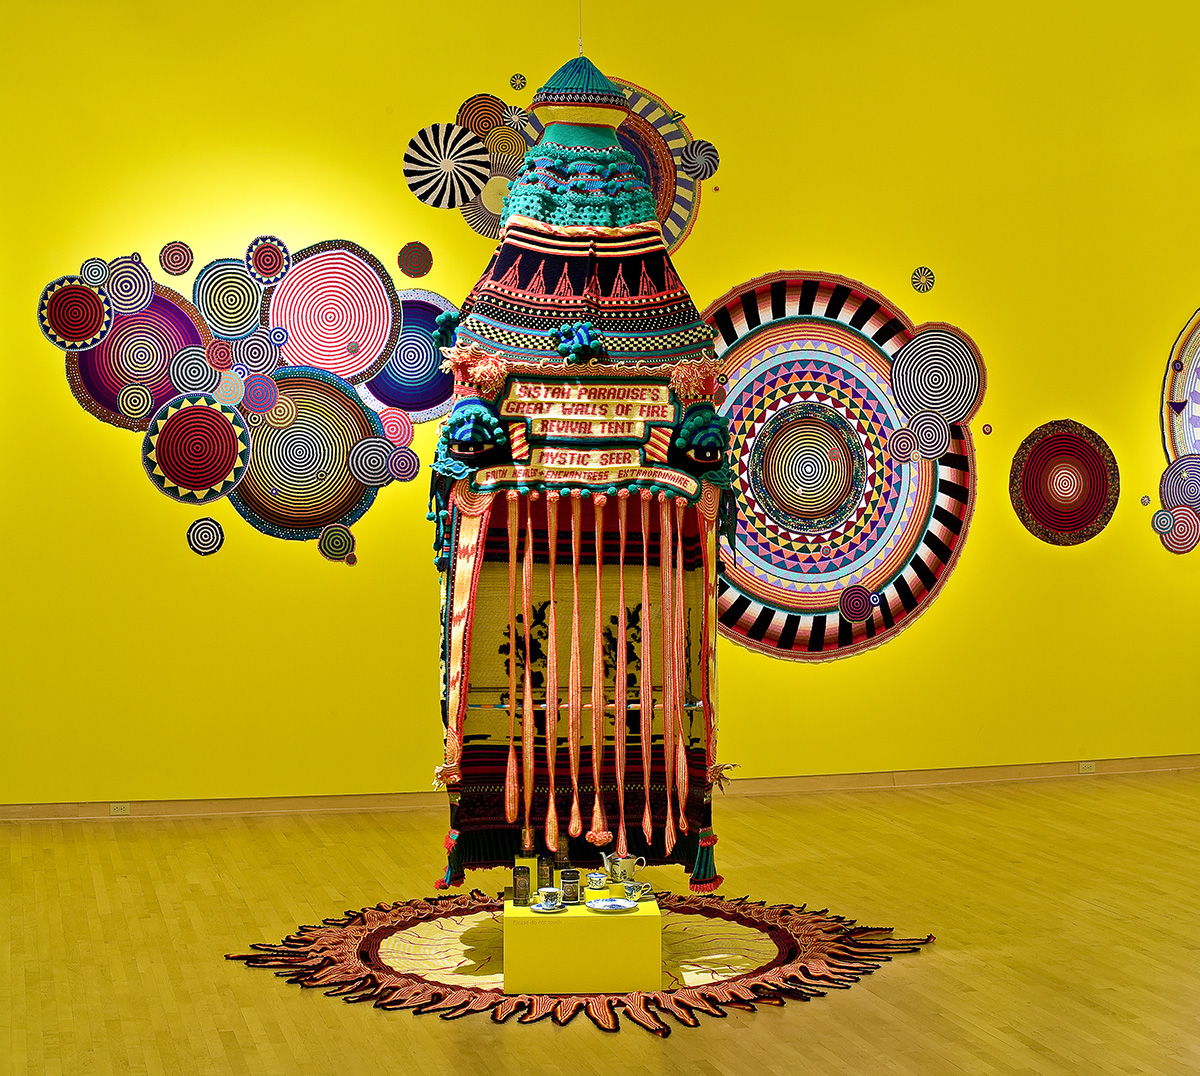 Xenobia Bailey, Sistah Paradise's Great Wall of Fire Tent (installation view, John Michael Kohler Arts Center), 1993; acrylic and cotton yarn and mixed media. Courtesy of the artist.